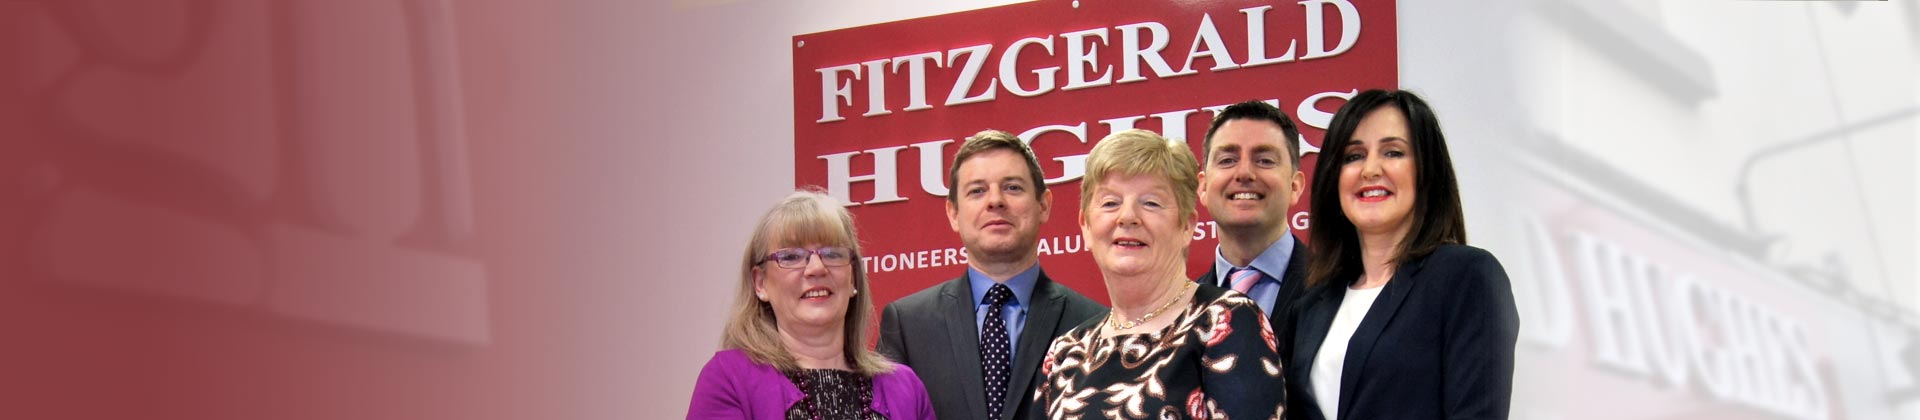 Fitzgerald Hughes is an exciting new venture in Auctioneering located at Main Street, Ratoath Co. Meath & Ballinamore, Co. Leitrim.